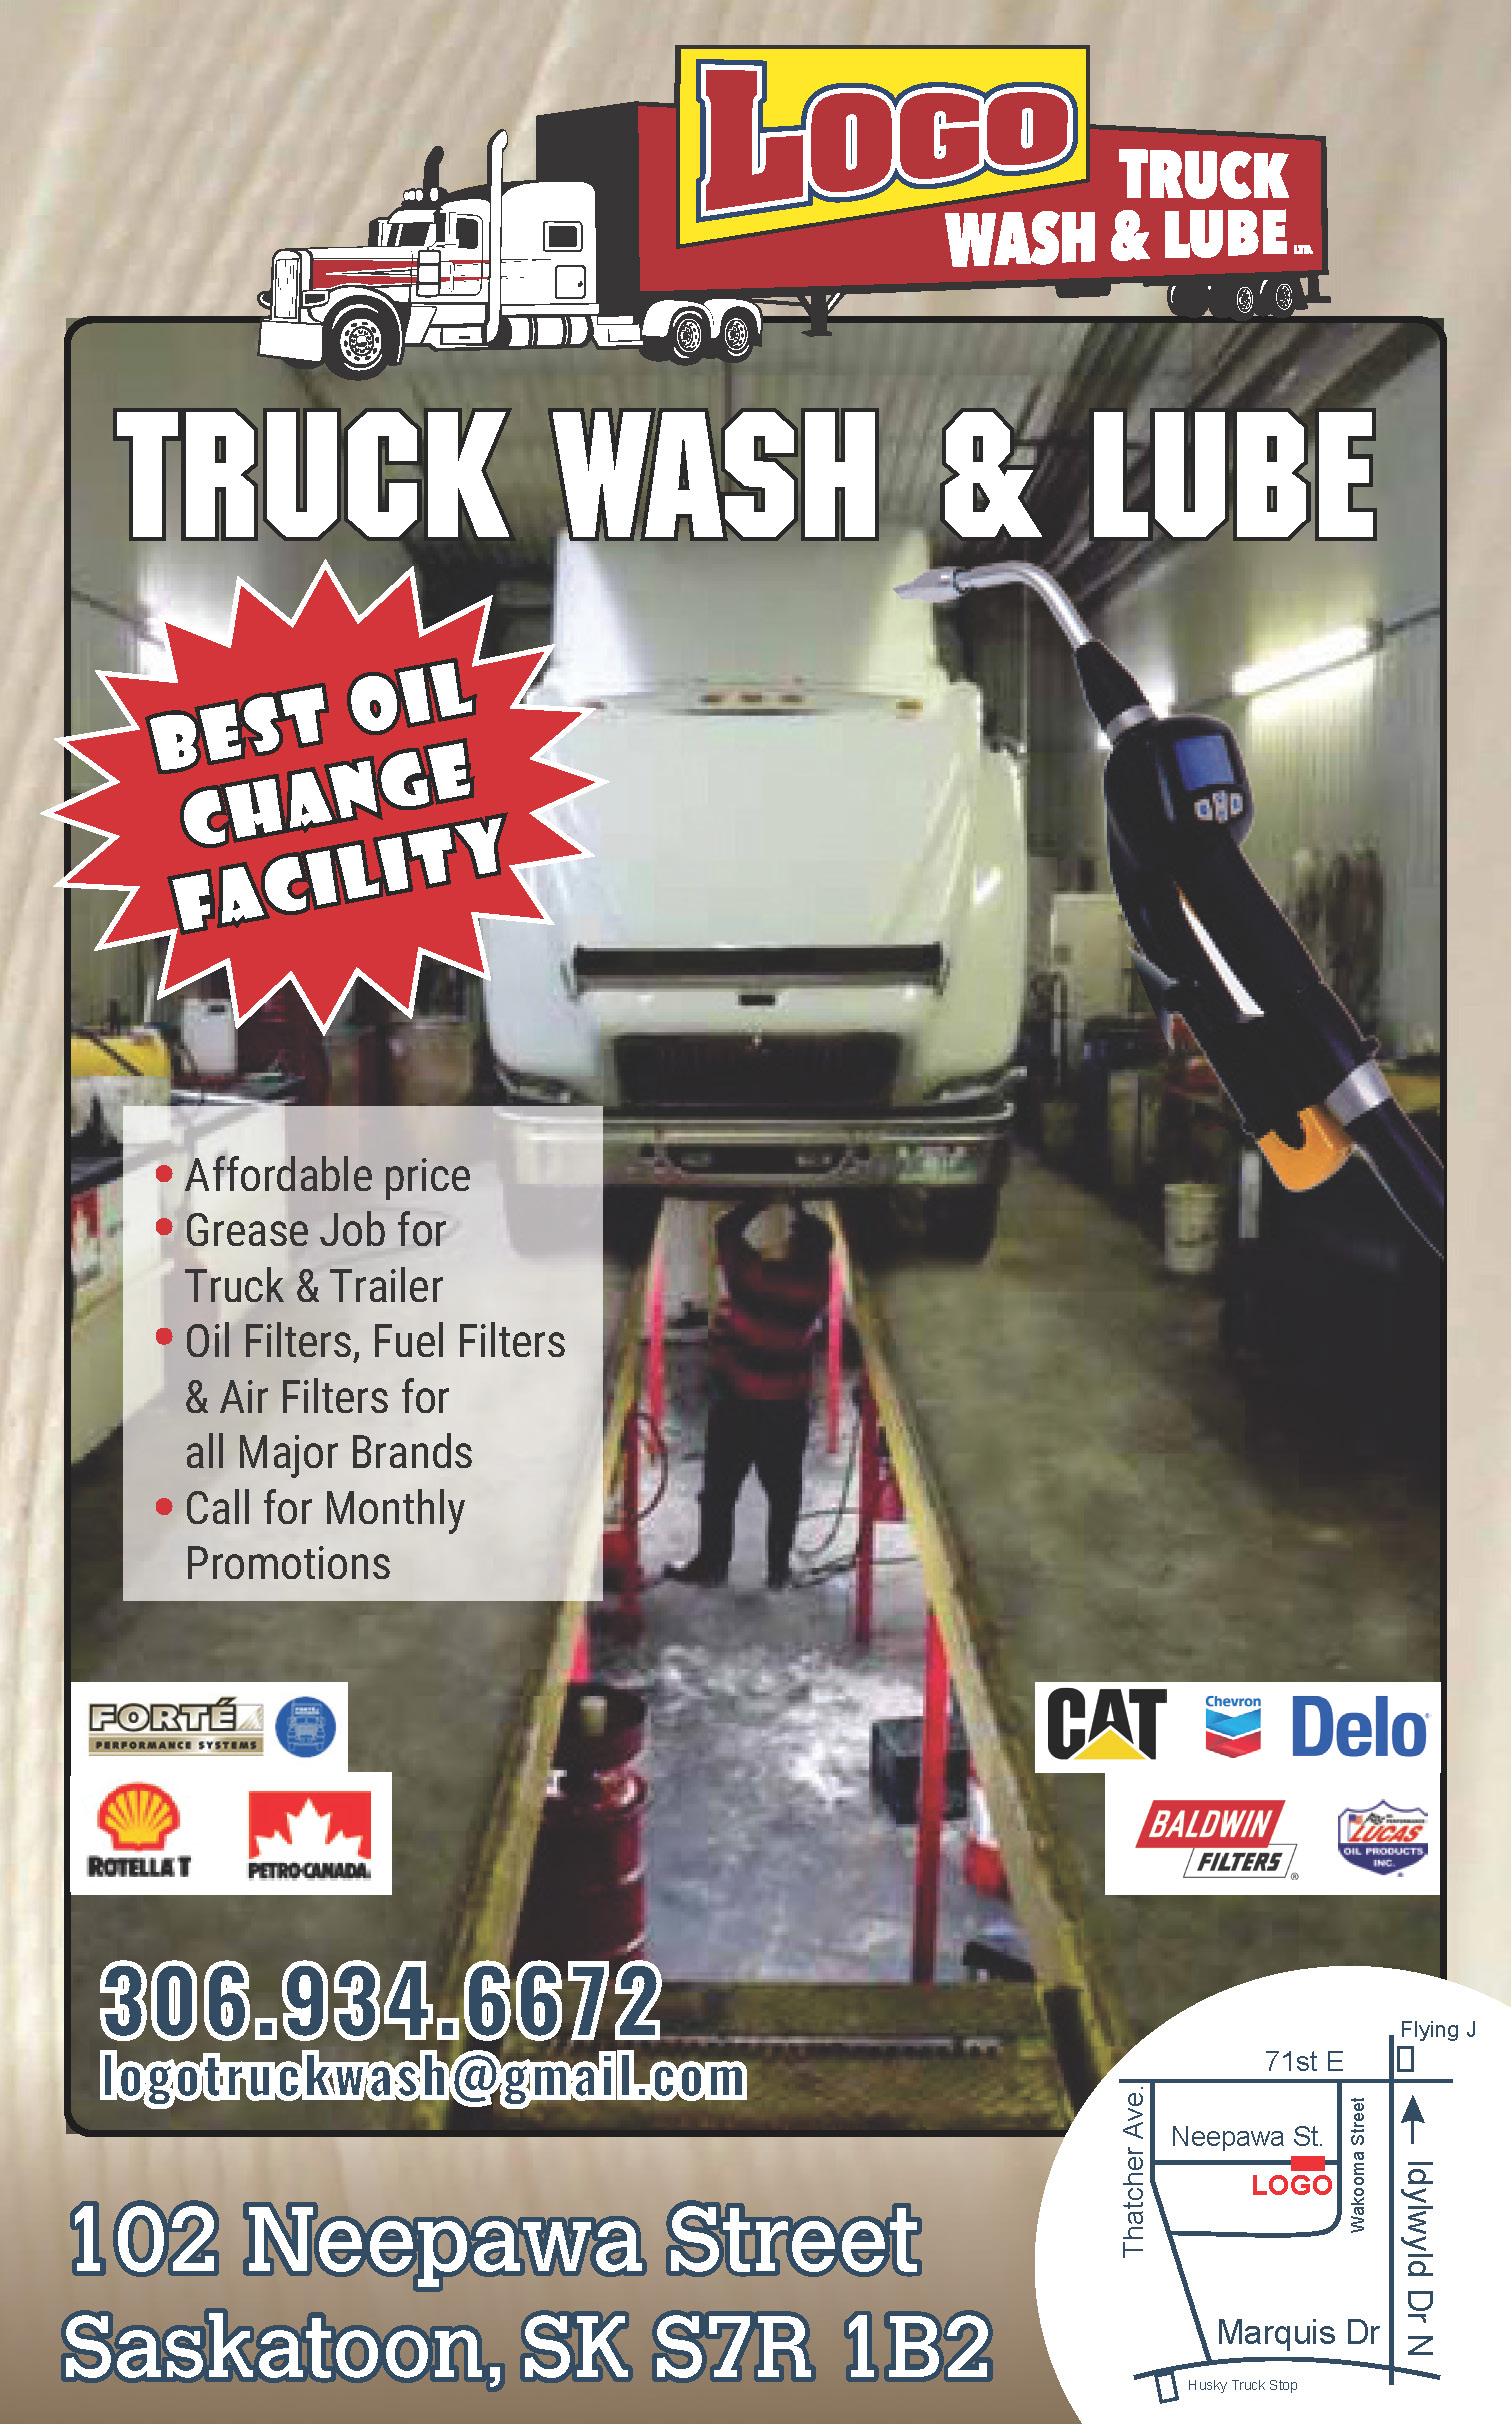 logo-truck-wash-lube-rh0GP7H.jpeg